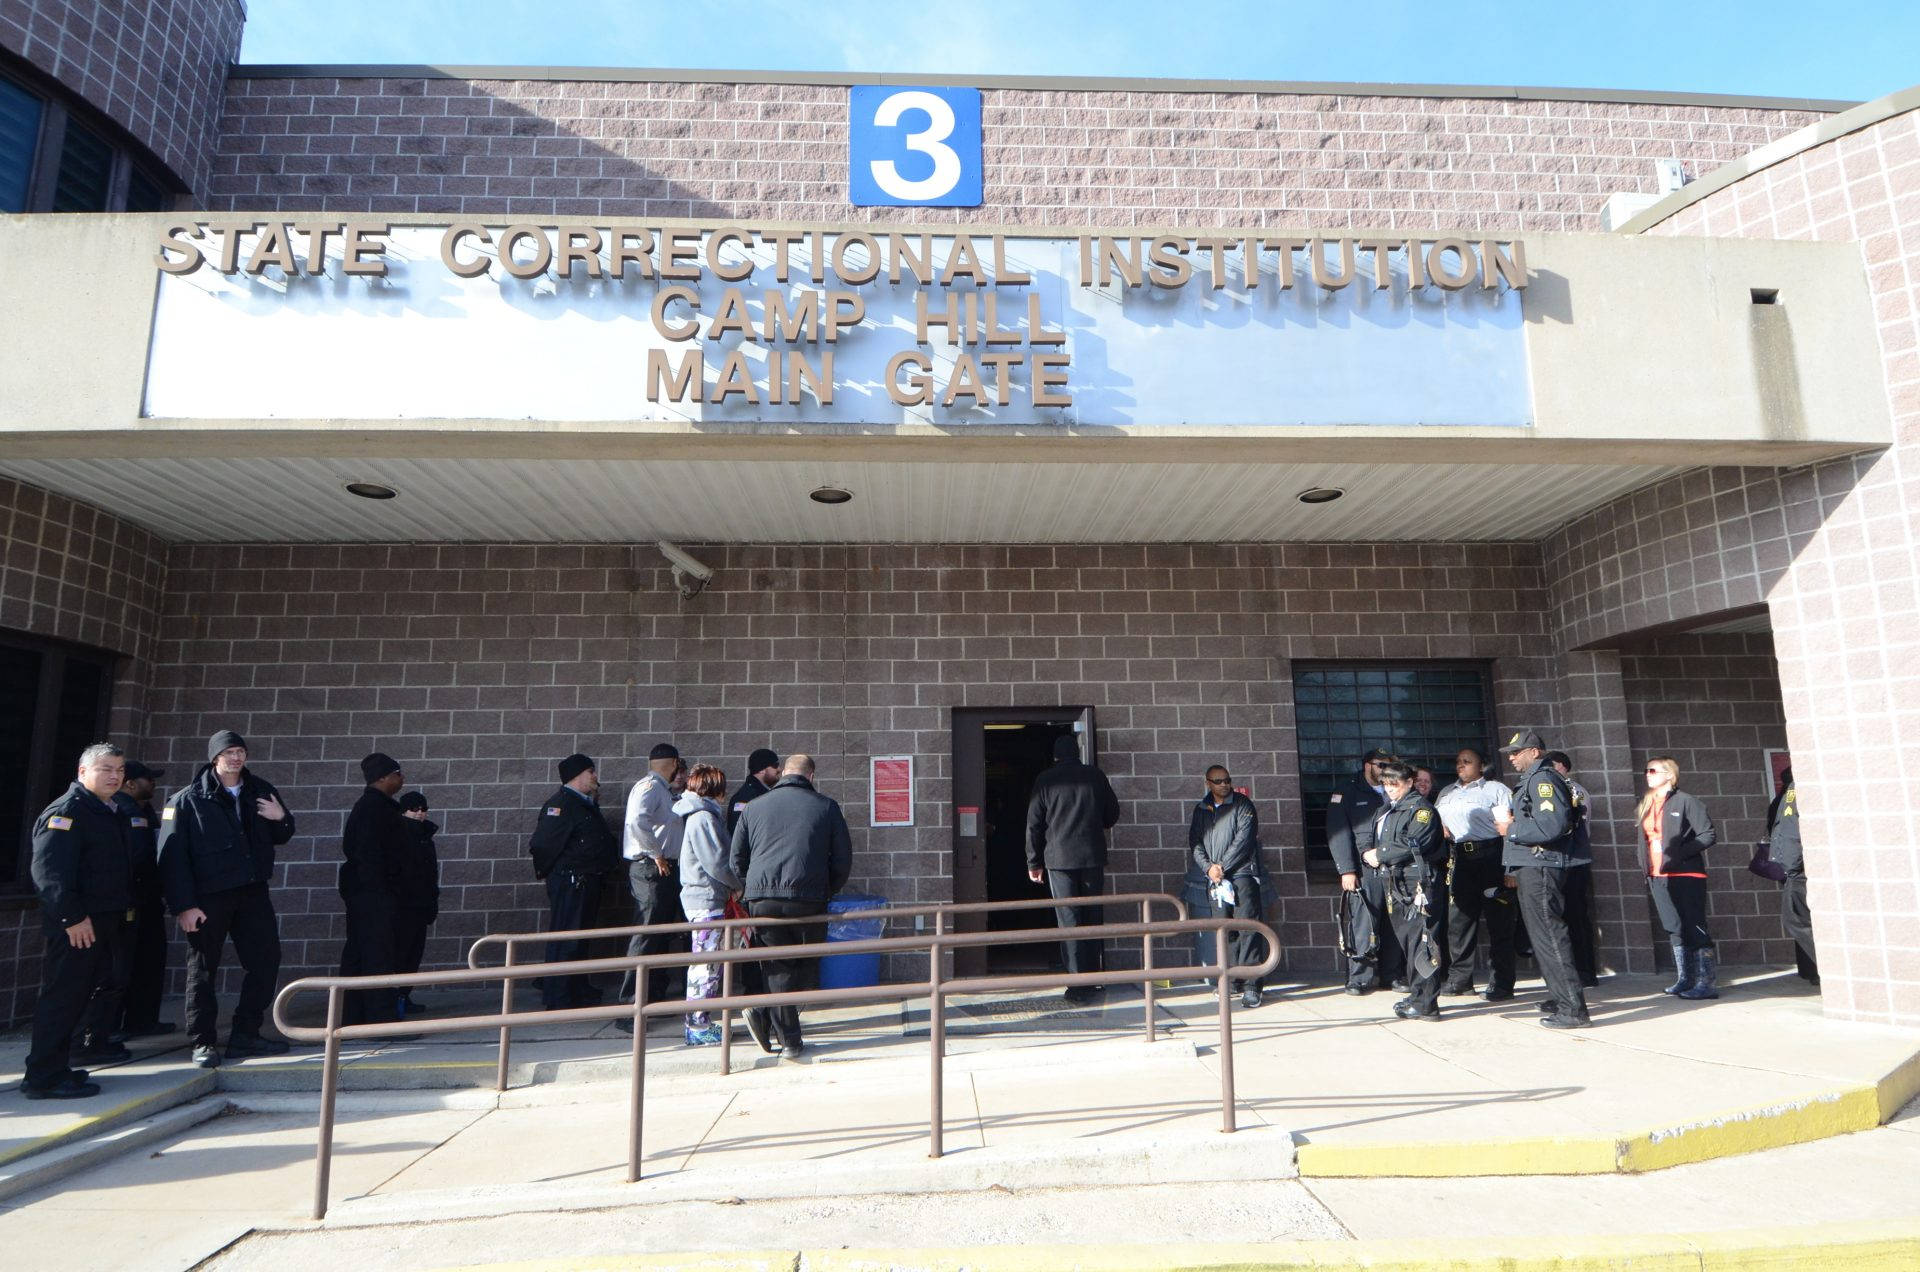 FILE PHOTO: Corrections officers arrive for their shift at the State Correctional Institution at Camp Hill on Jan. 13, 2017, in Camp Hill, Pa.